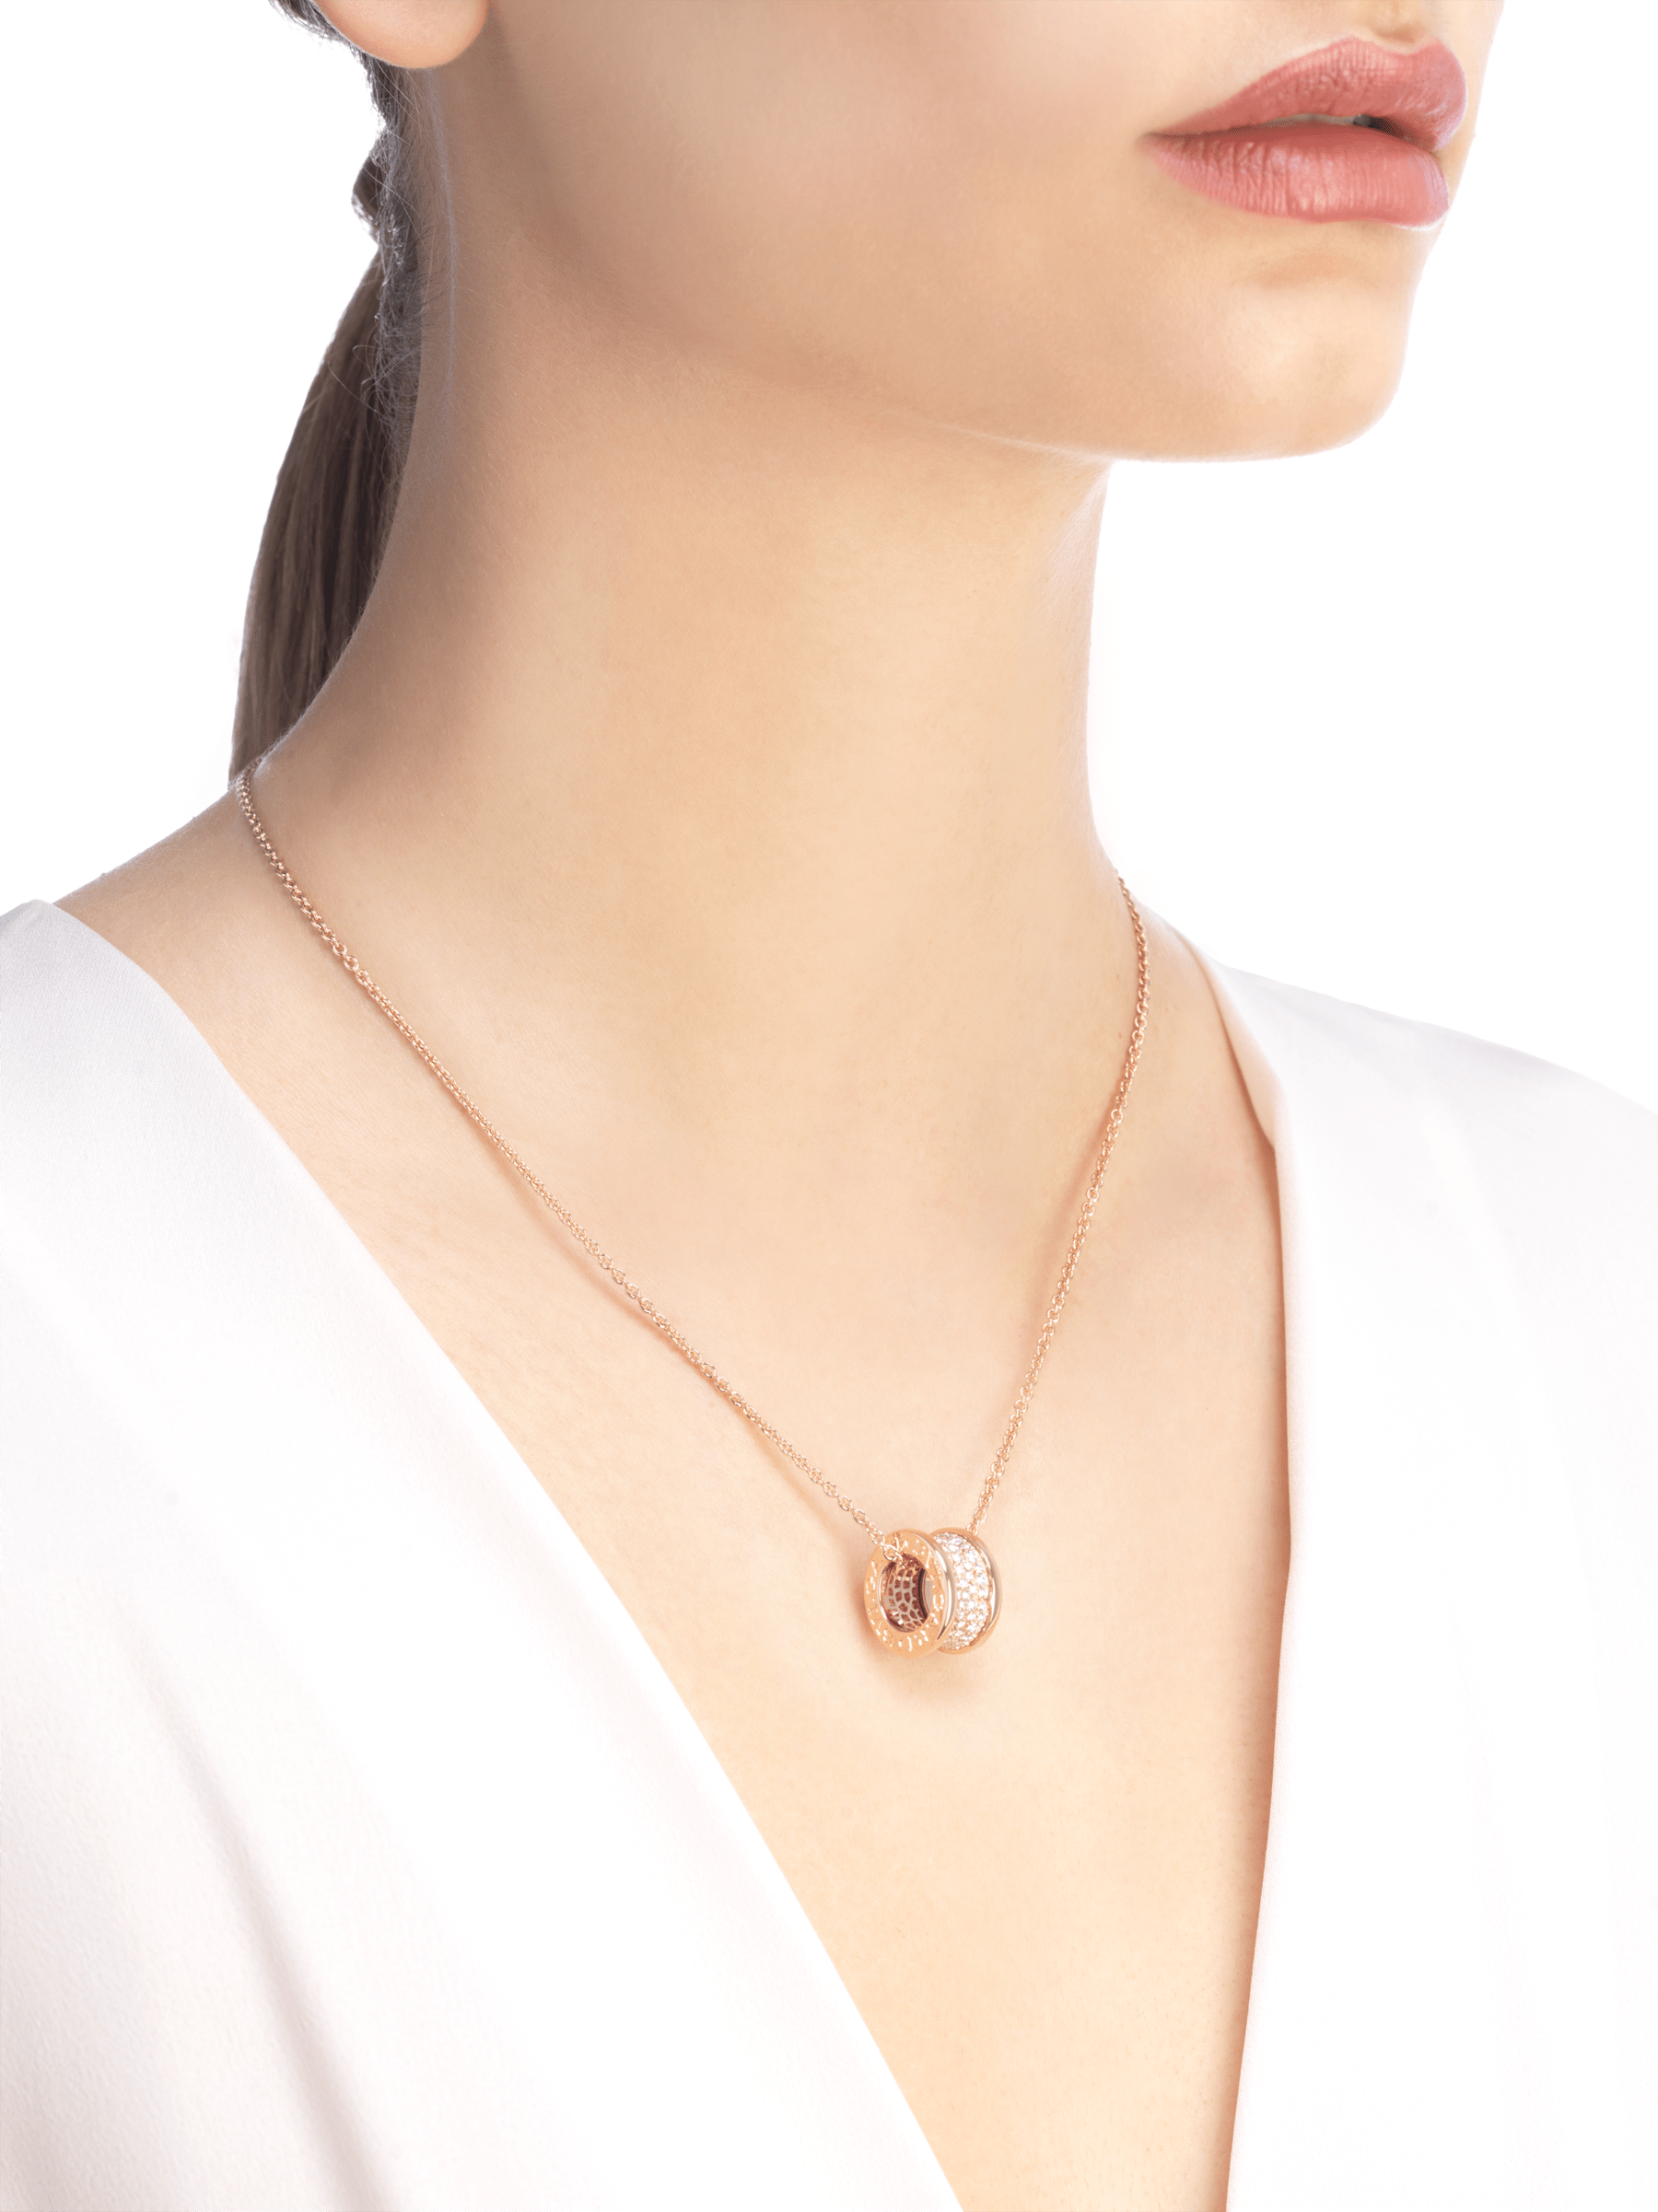 B.zero1 necklace with 18 kt rose gold chain and 18 kt rose gold pendant set with pavé diamonds on the spiral. 348035 image 4